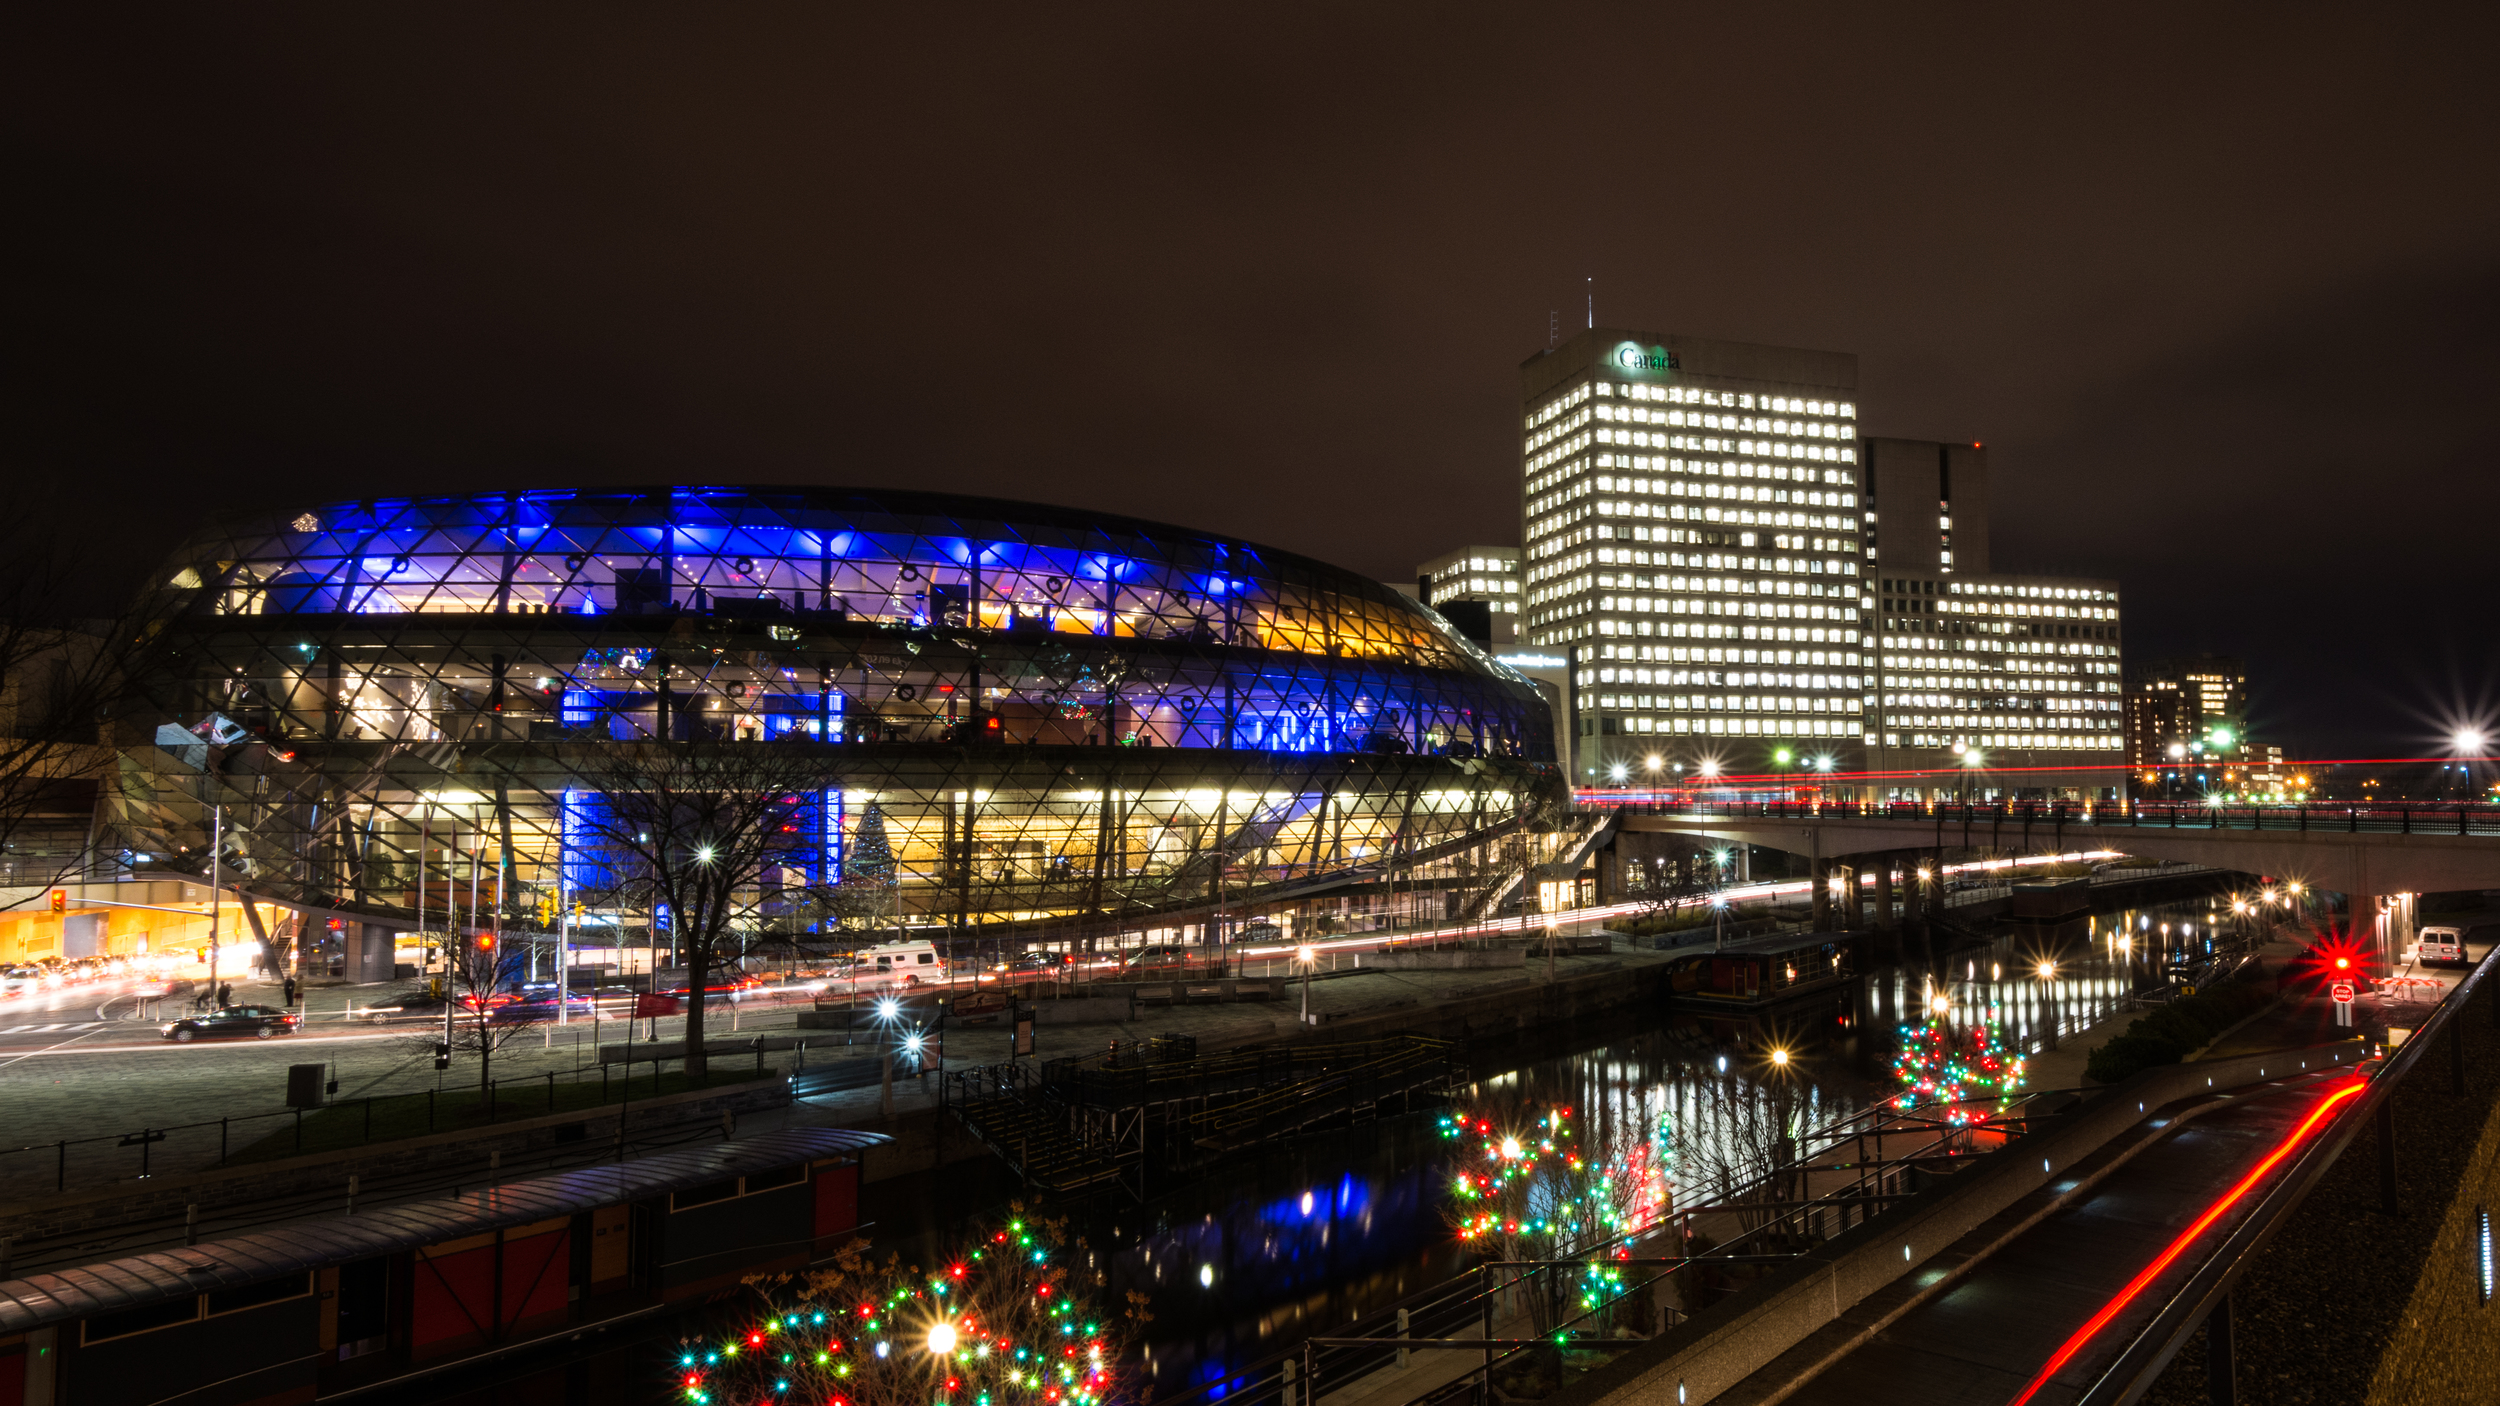 Shaw Centre / f18 / 13mm / 20s / ISO 200